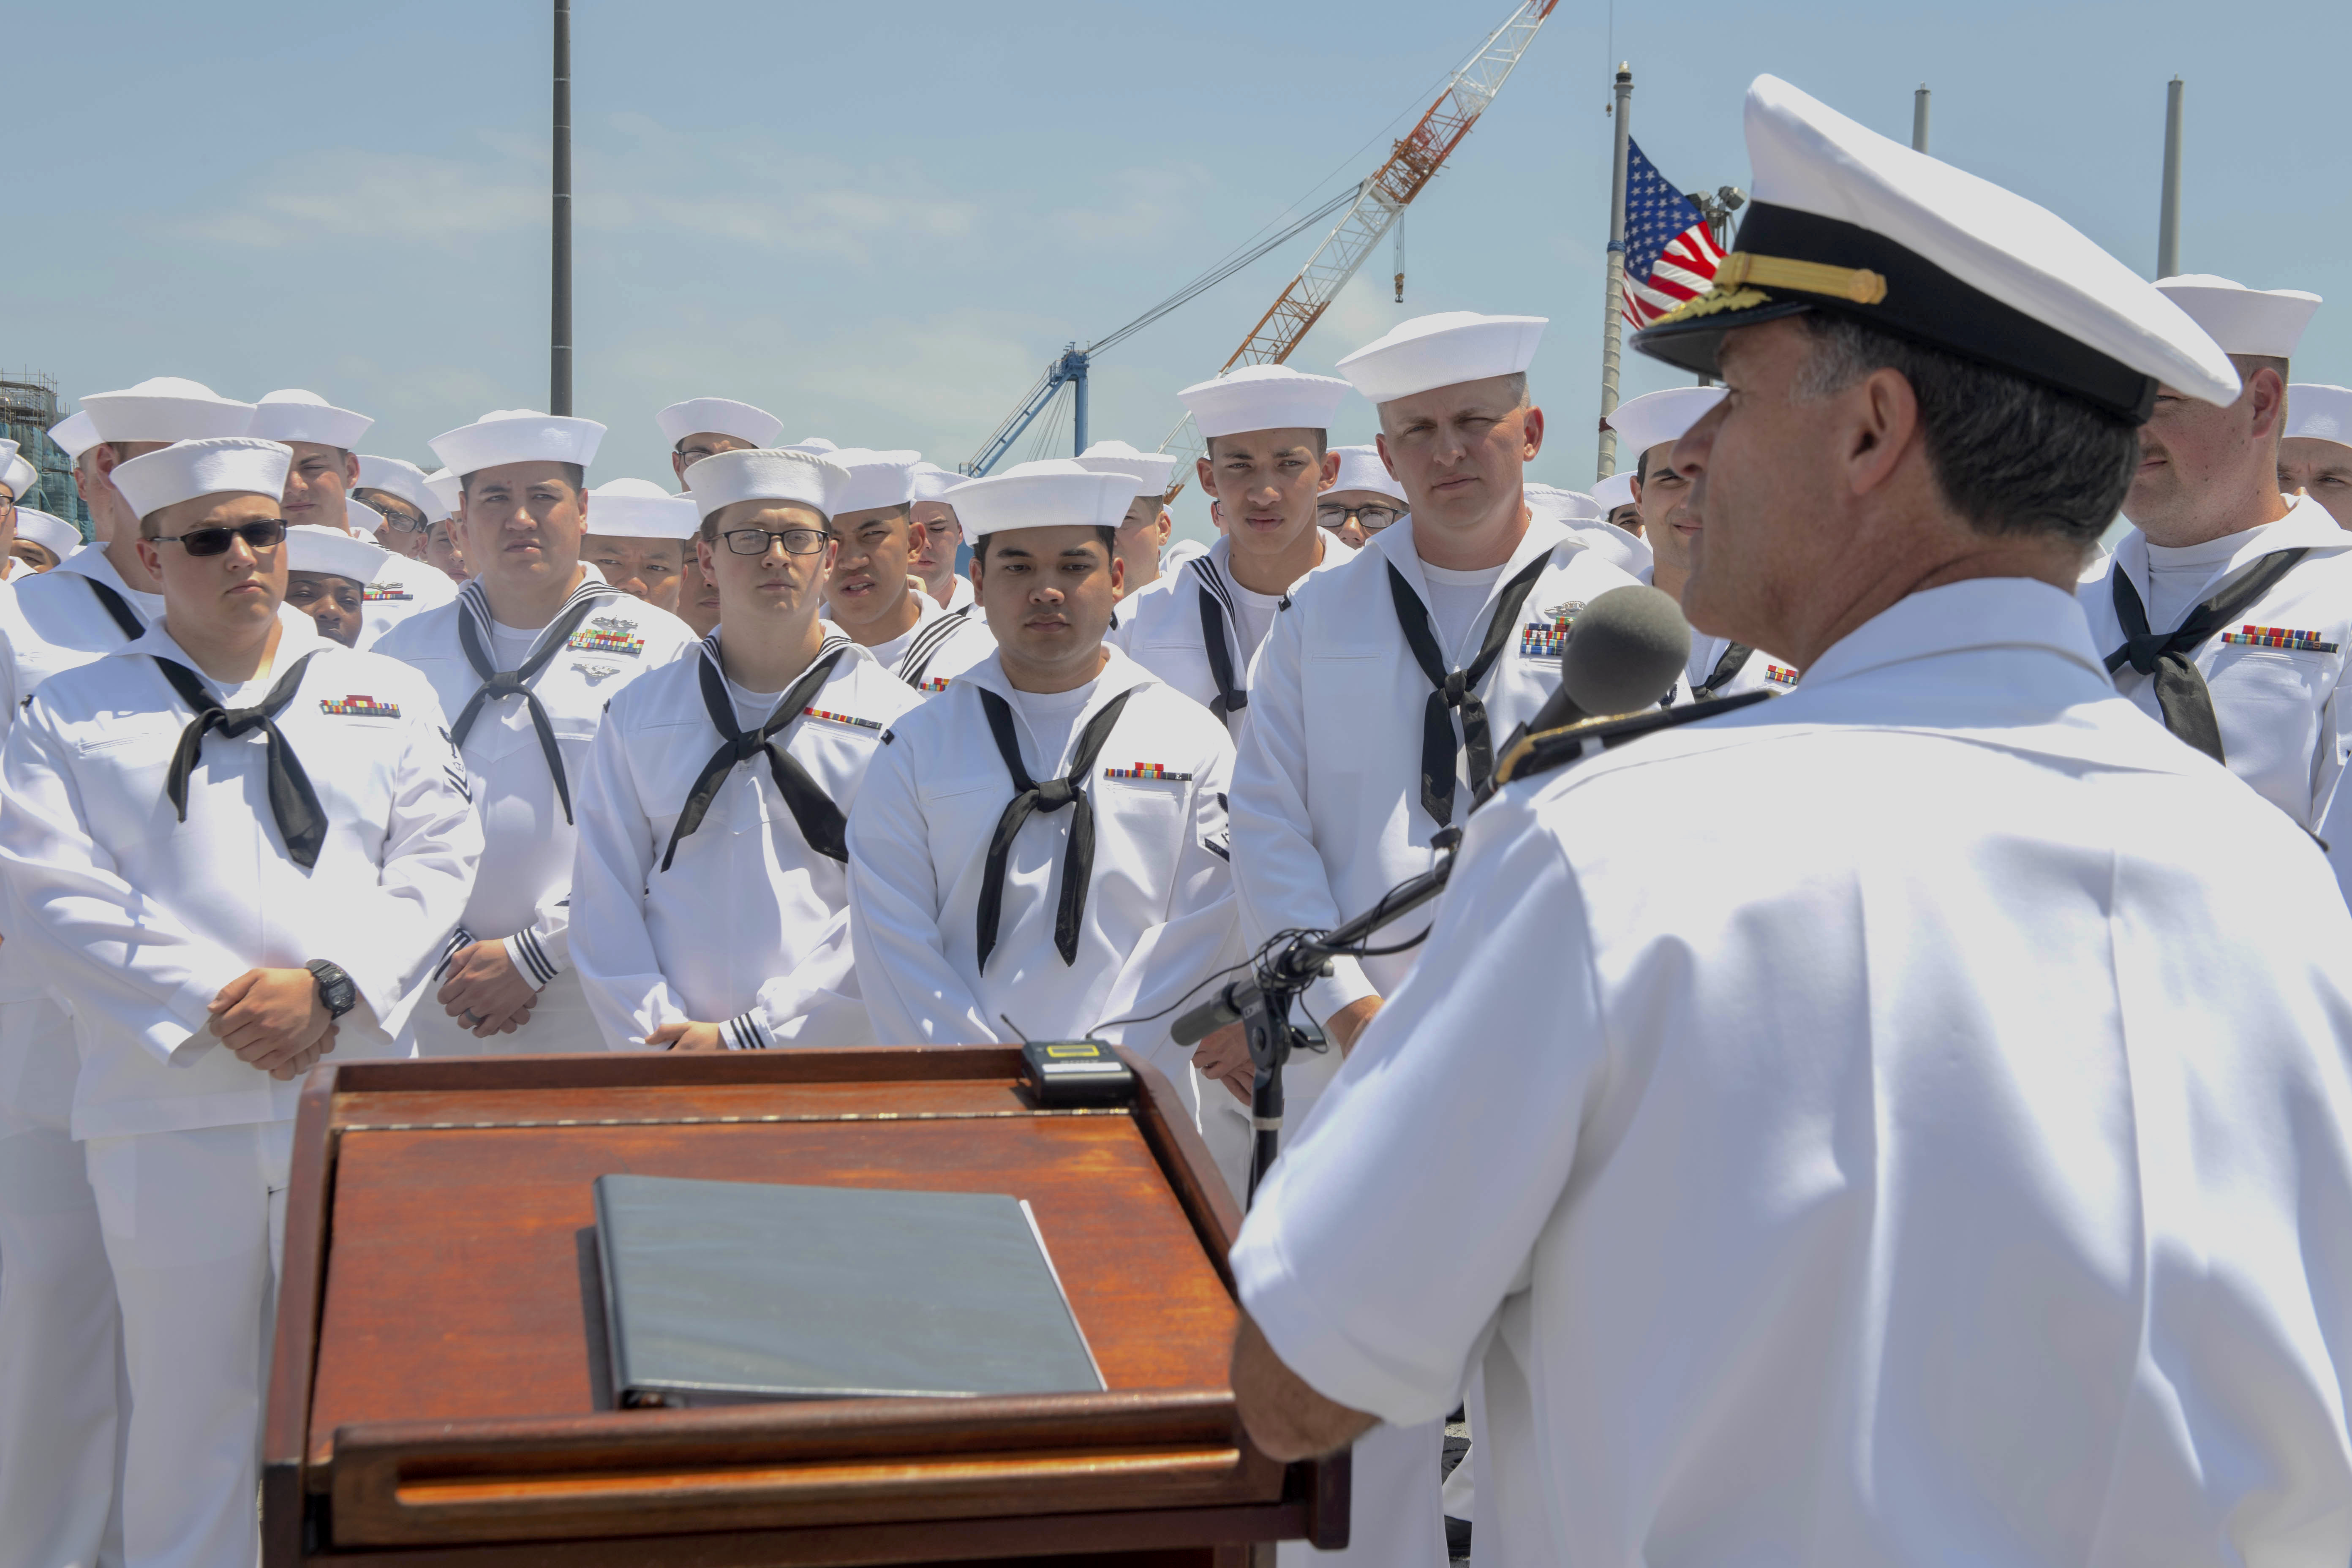 50 Sailors from USS John S. McCain Honored for Actions During 2017 Collision - USNI News